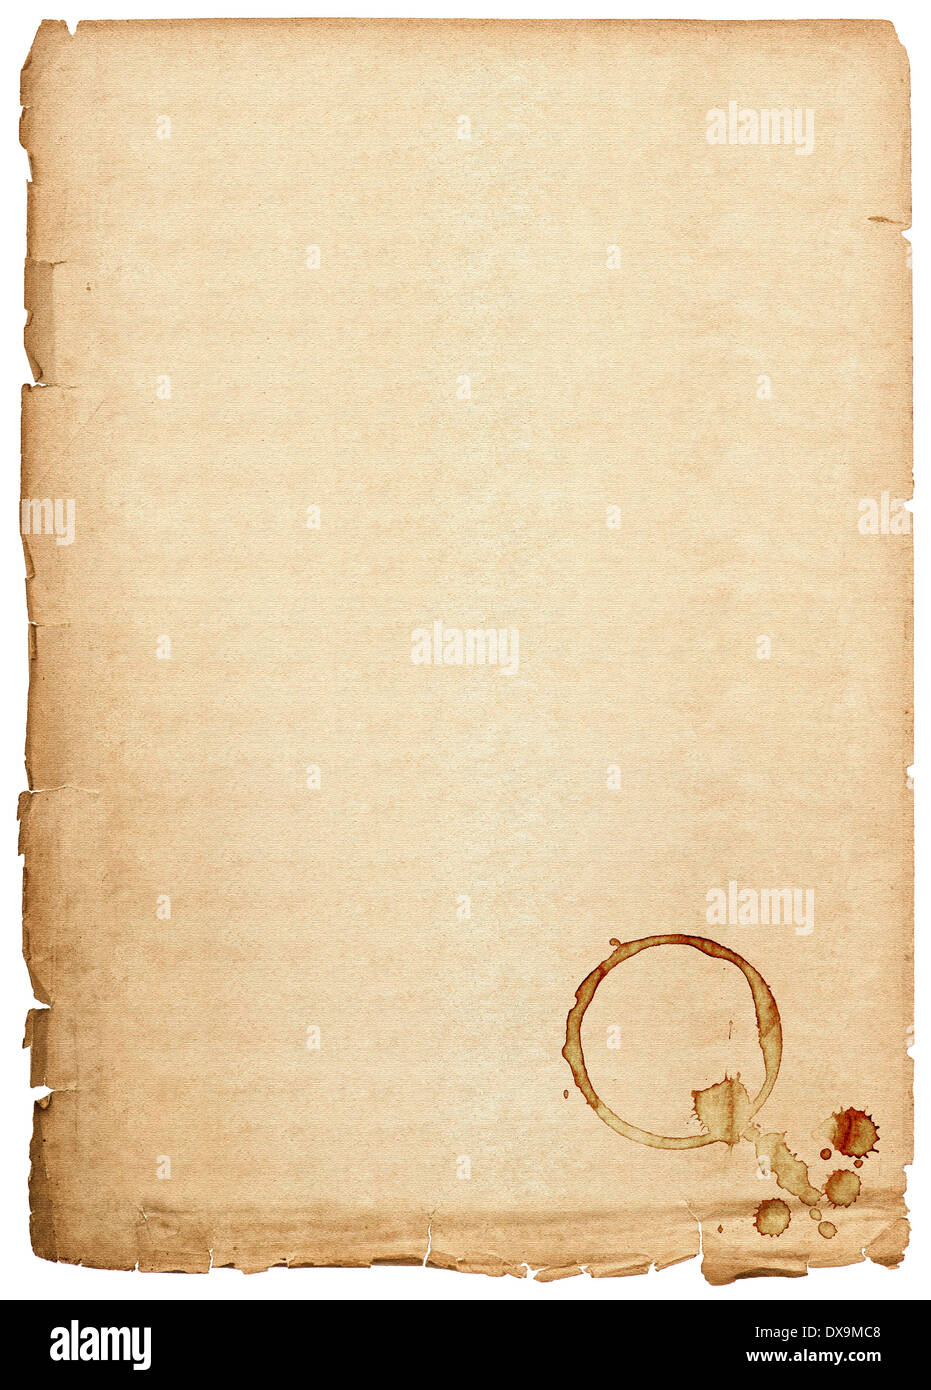 Old Paper Sheet Isolated On White Background Antique Book Page With Coffee Stains